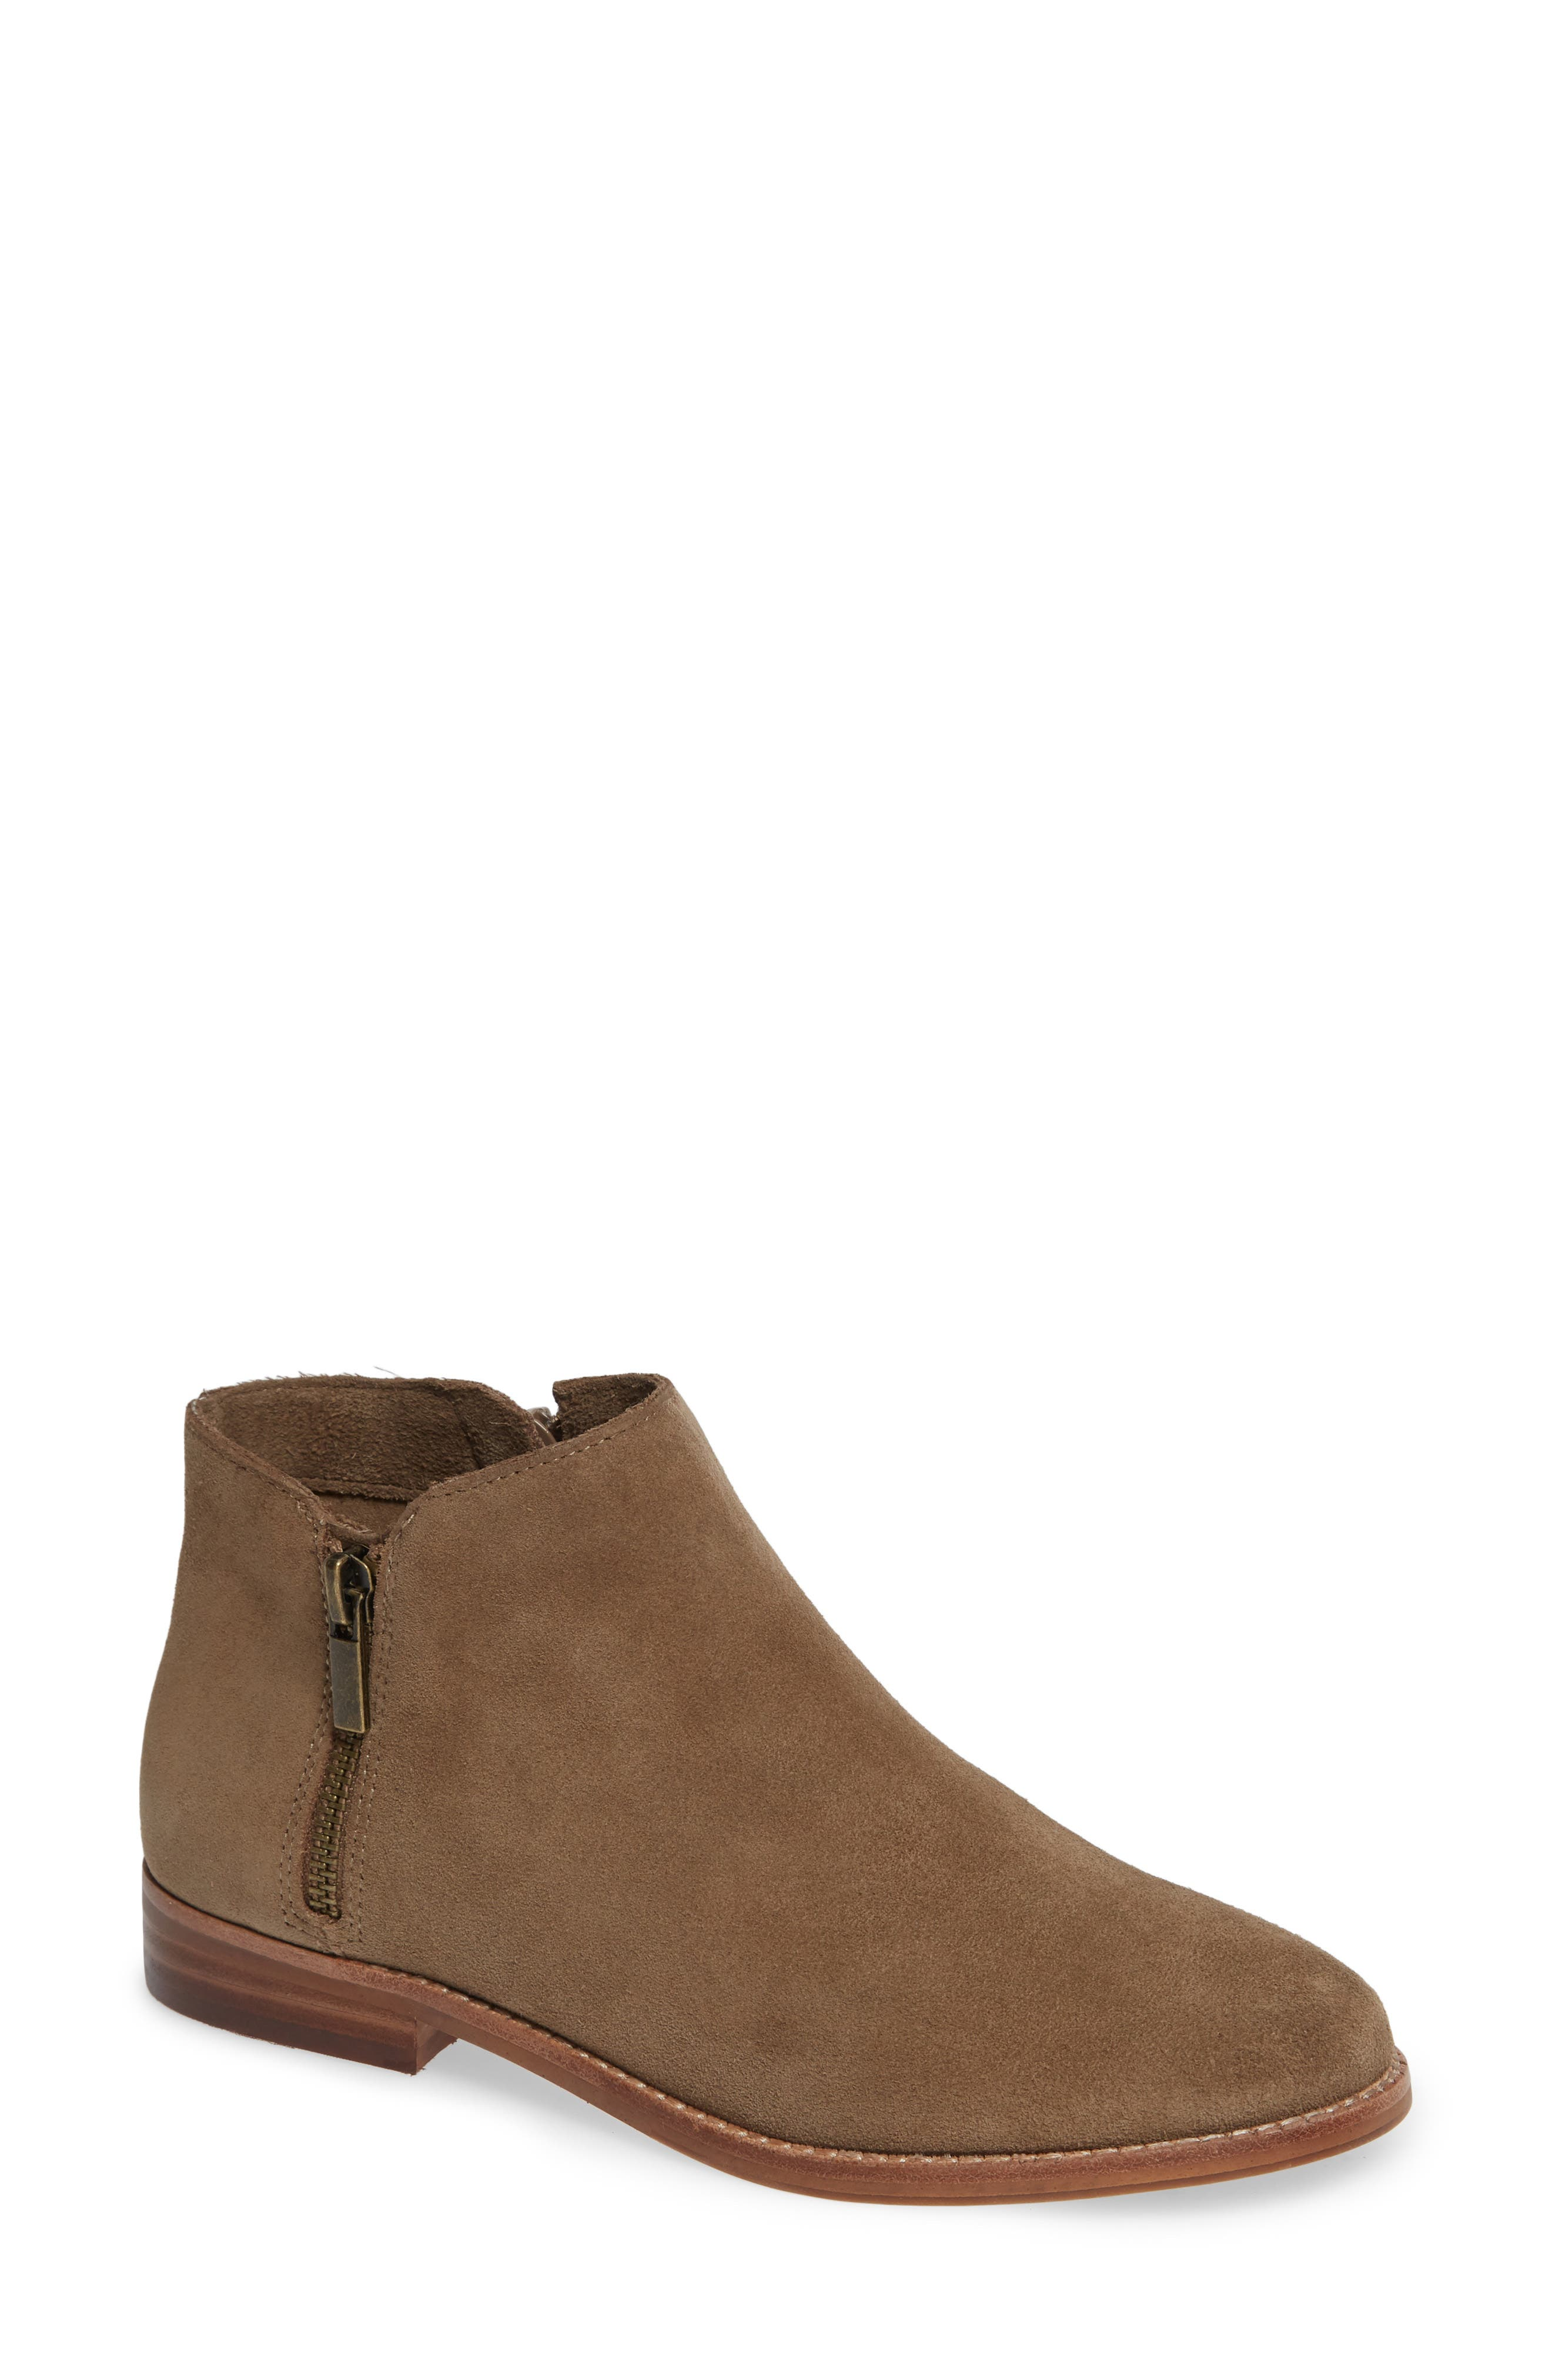 Bevlyn Bootie,                             Main thumbnail 1, color,                             ROCK SUEDE